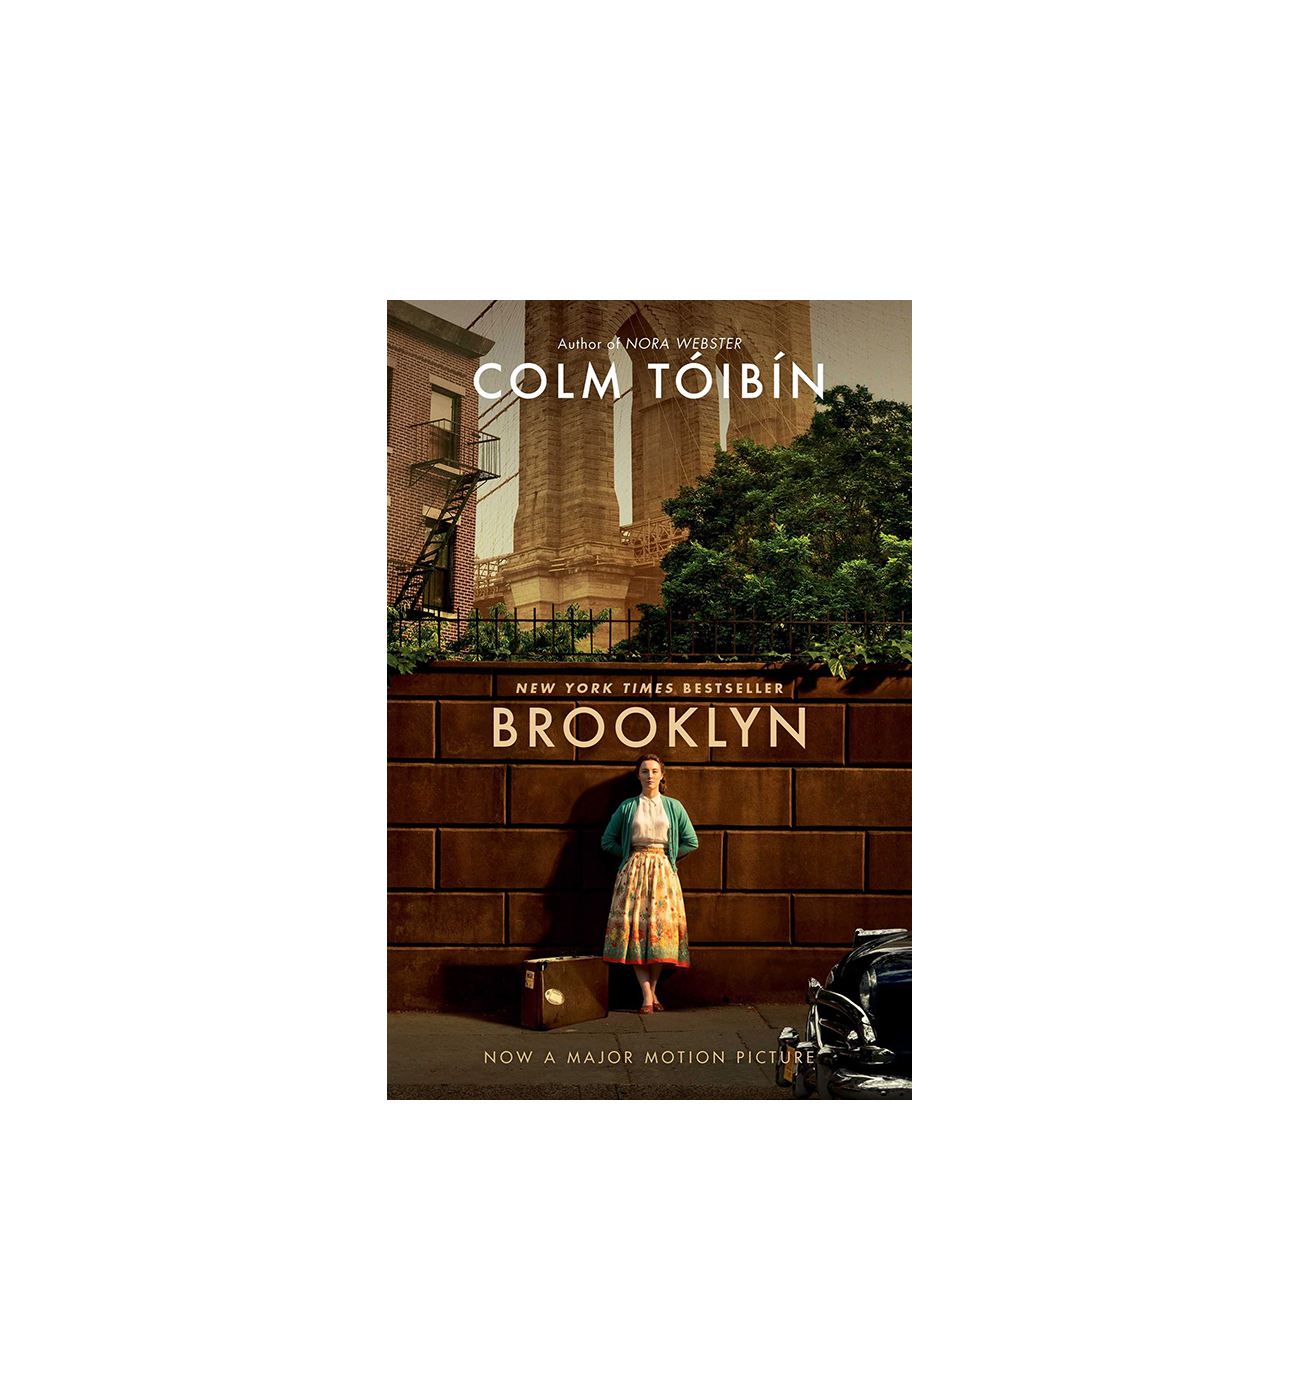 Brooklyn, by Colm Toibin